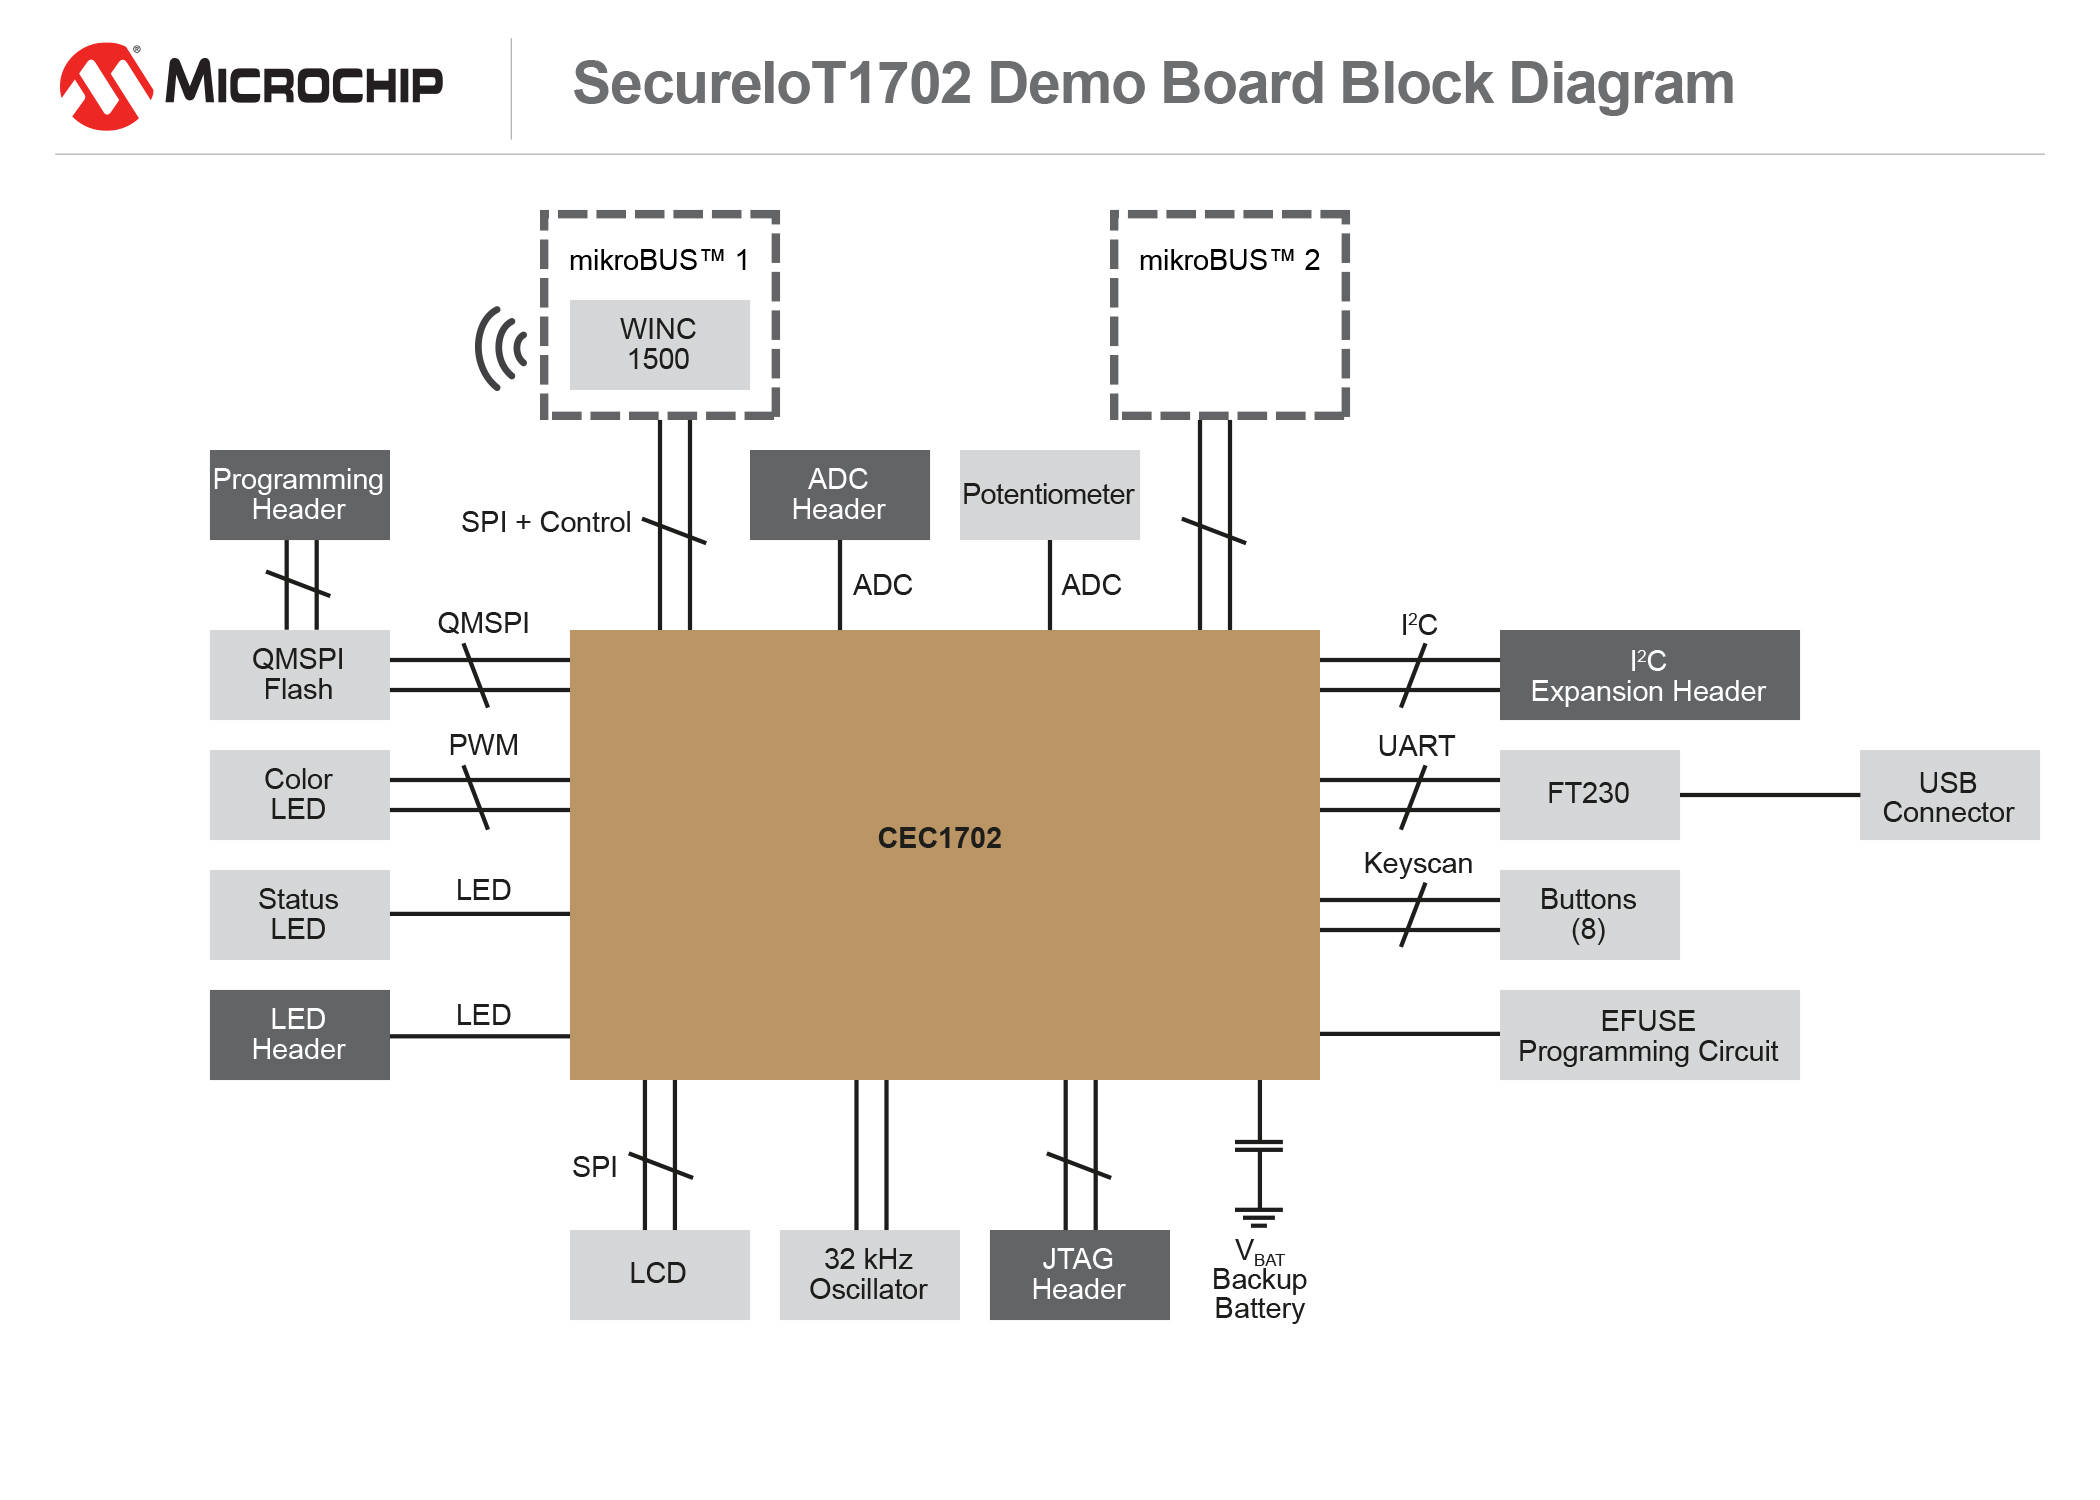 Microchips Wi Fi Sdk With Apple Homekit Support Now Available 1 Circuit Diagram Secureiot1702 Development Kit Block